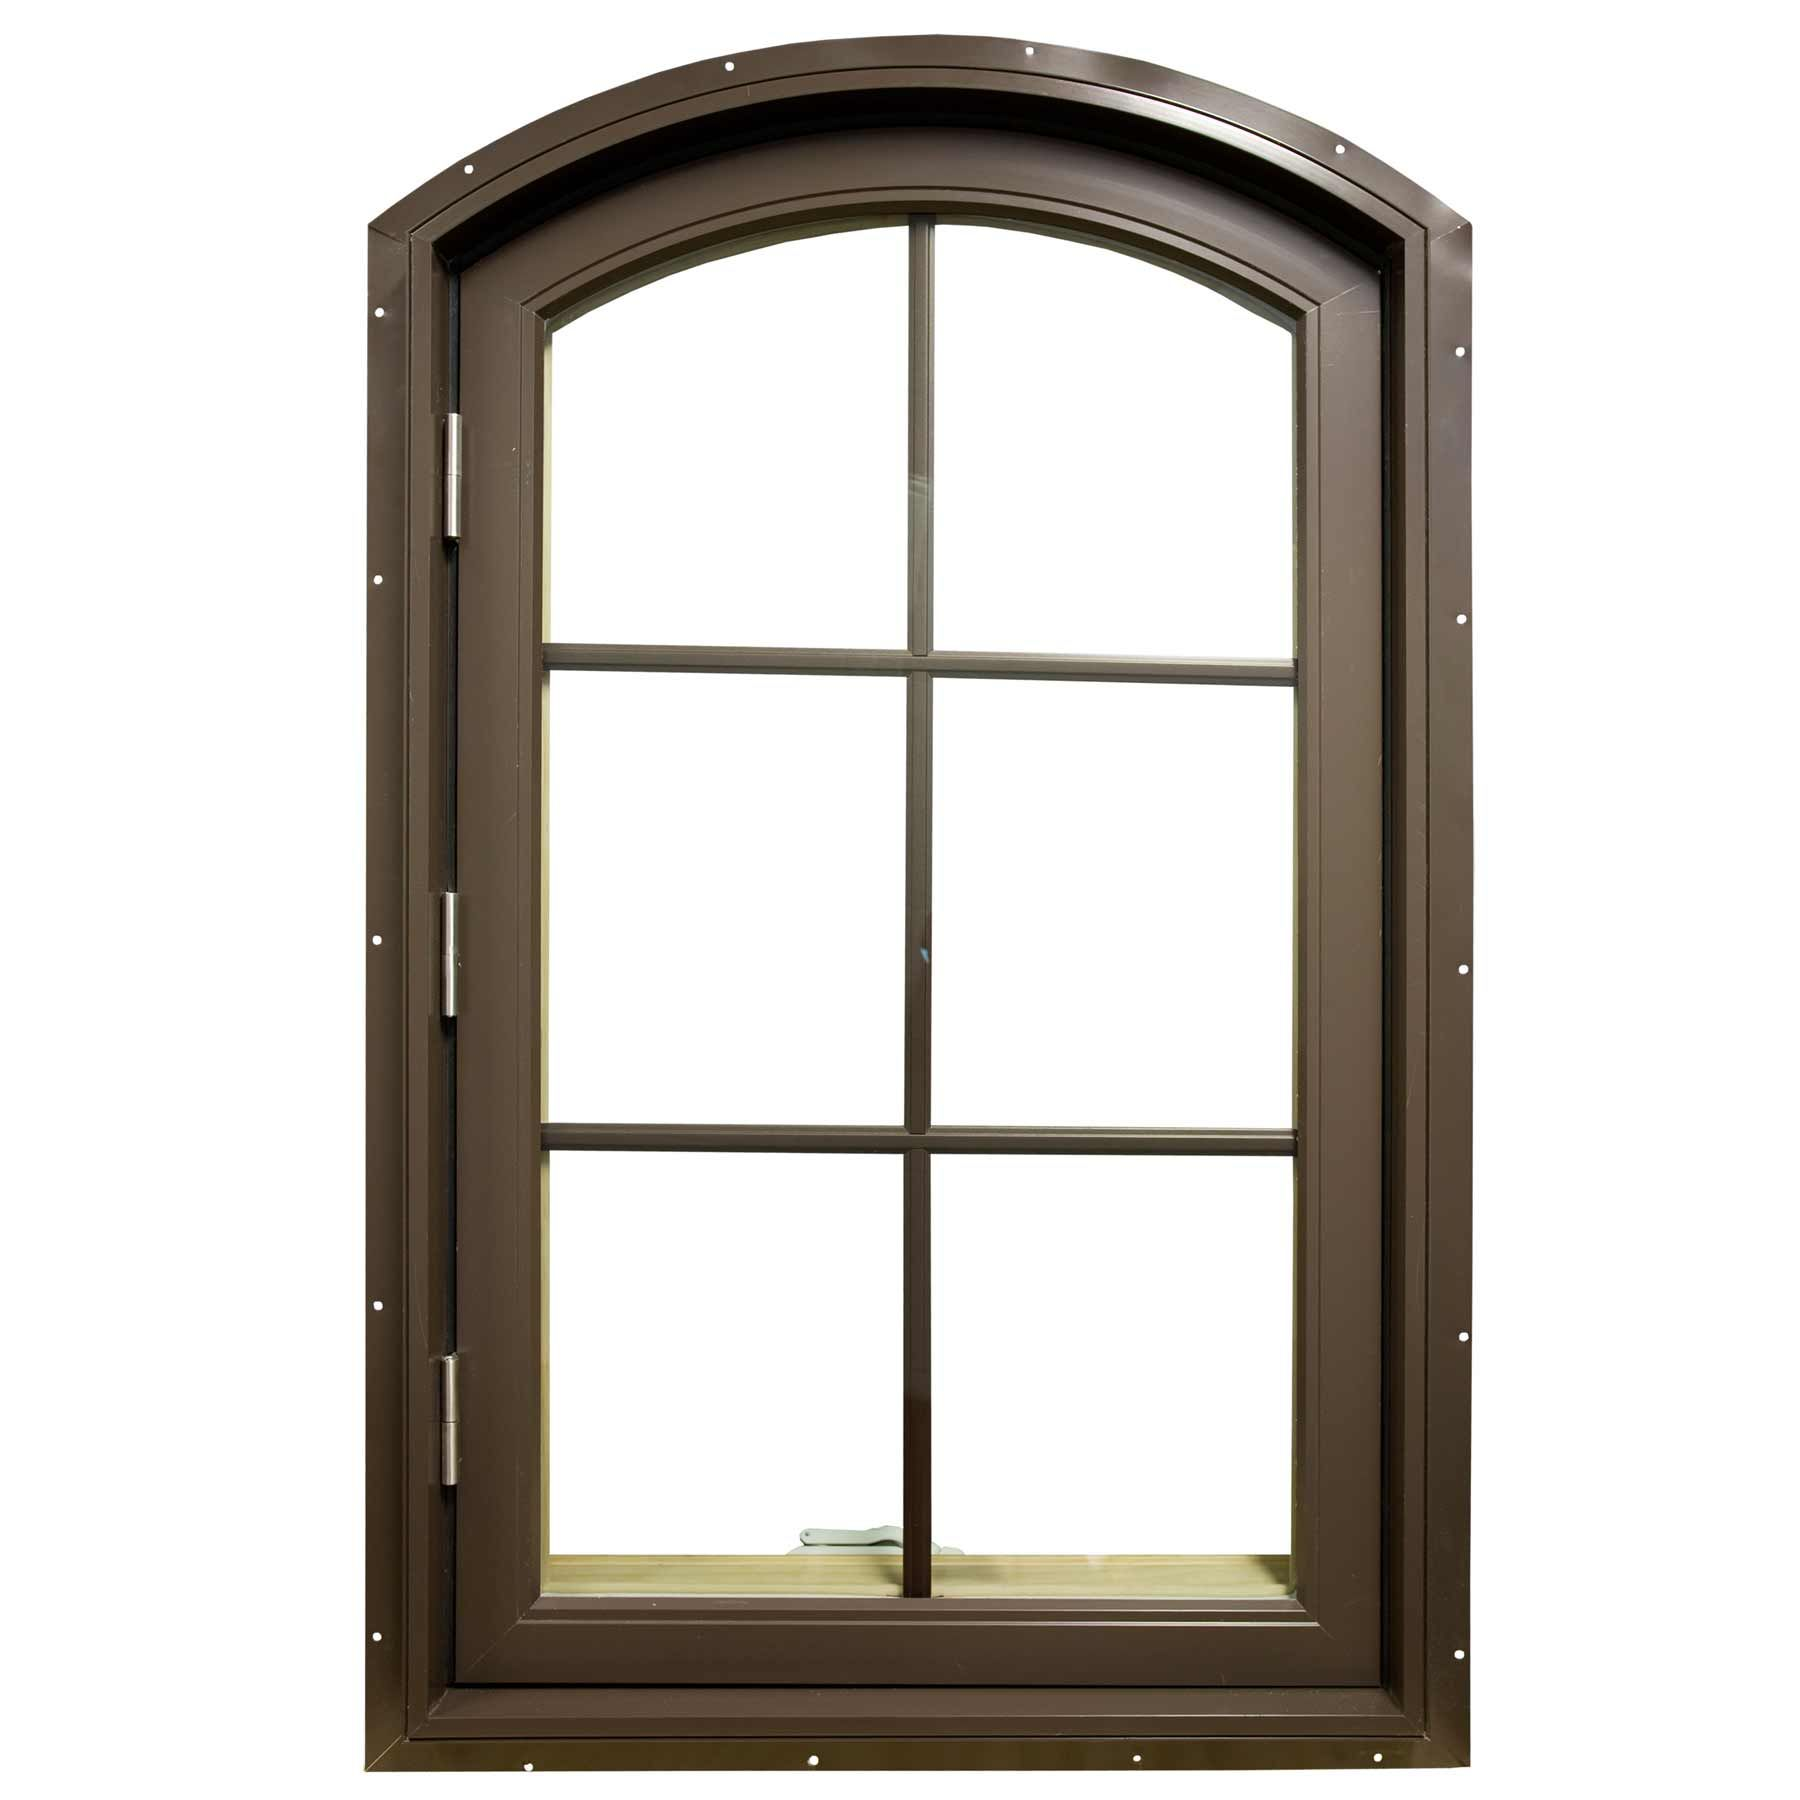 Metal window frames designs images for Window design metal